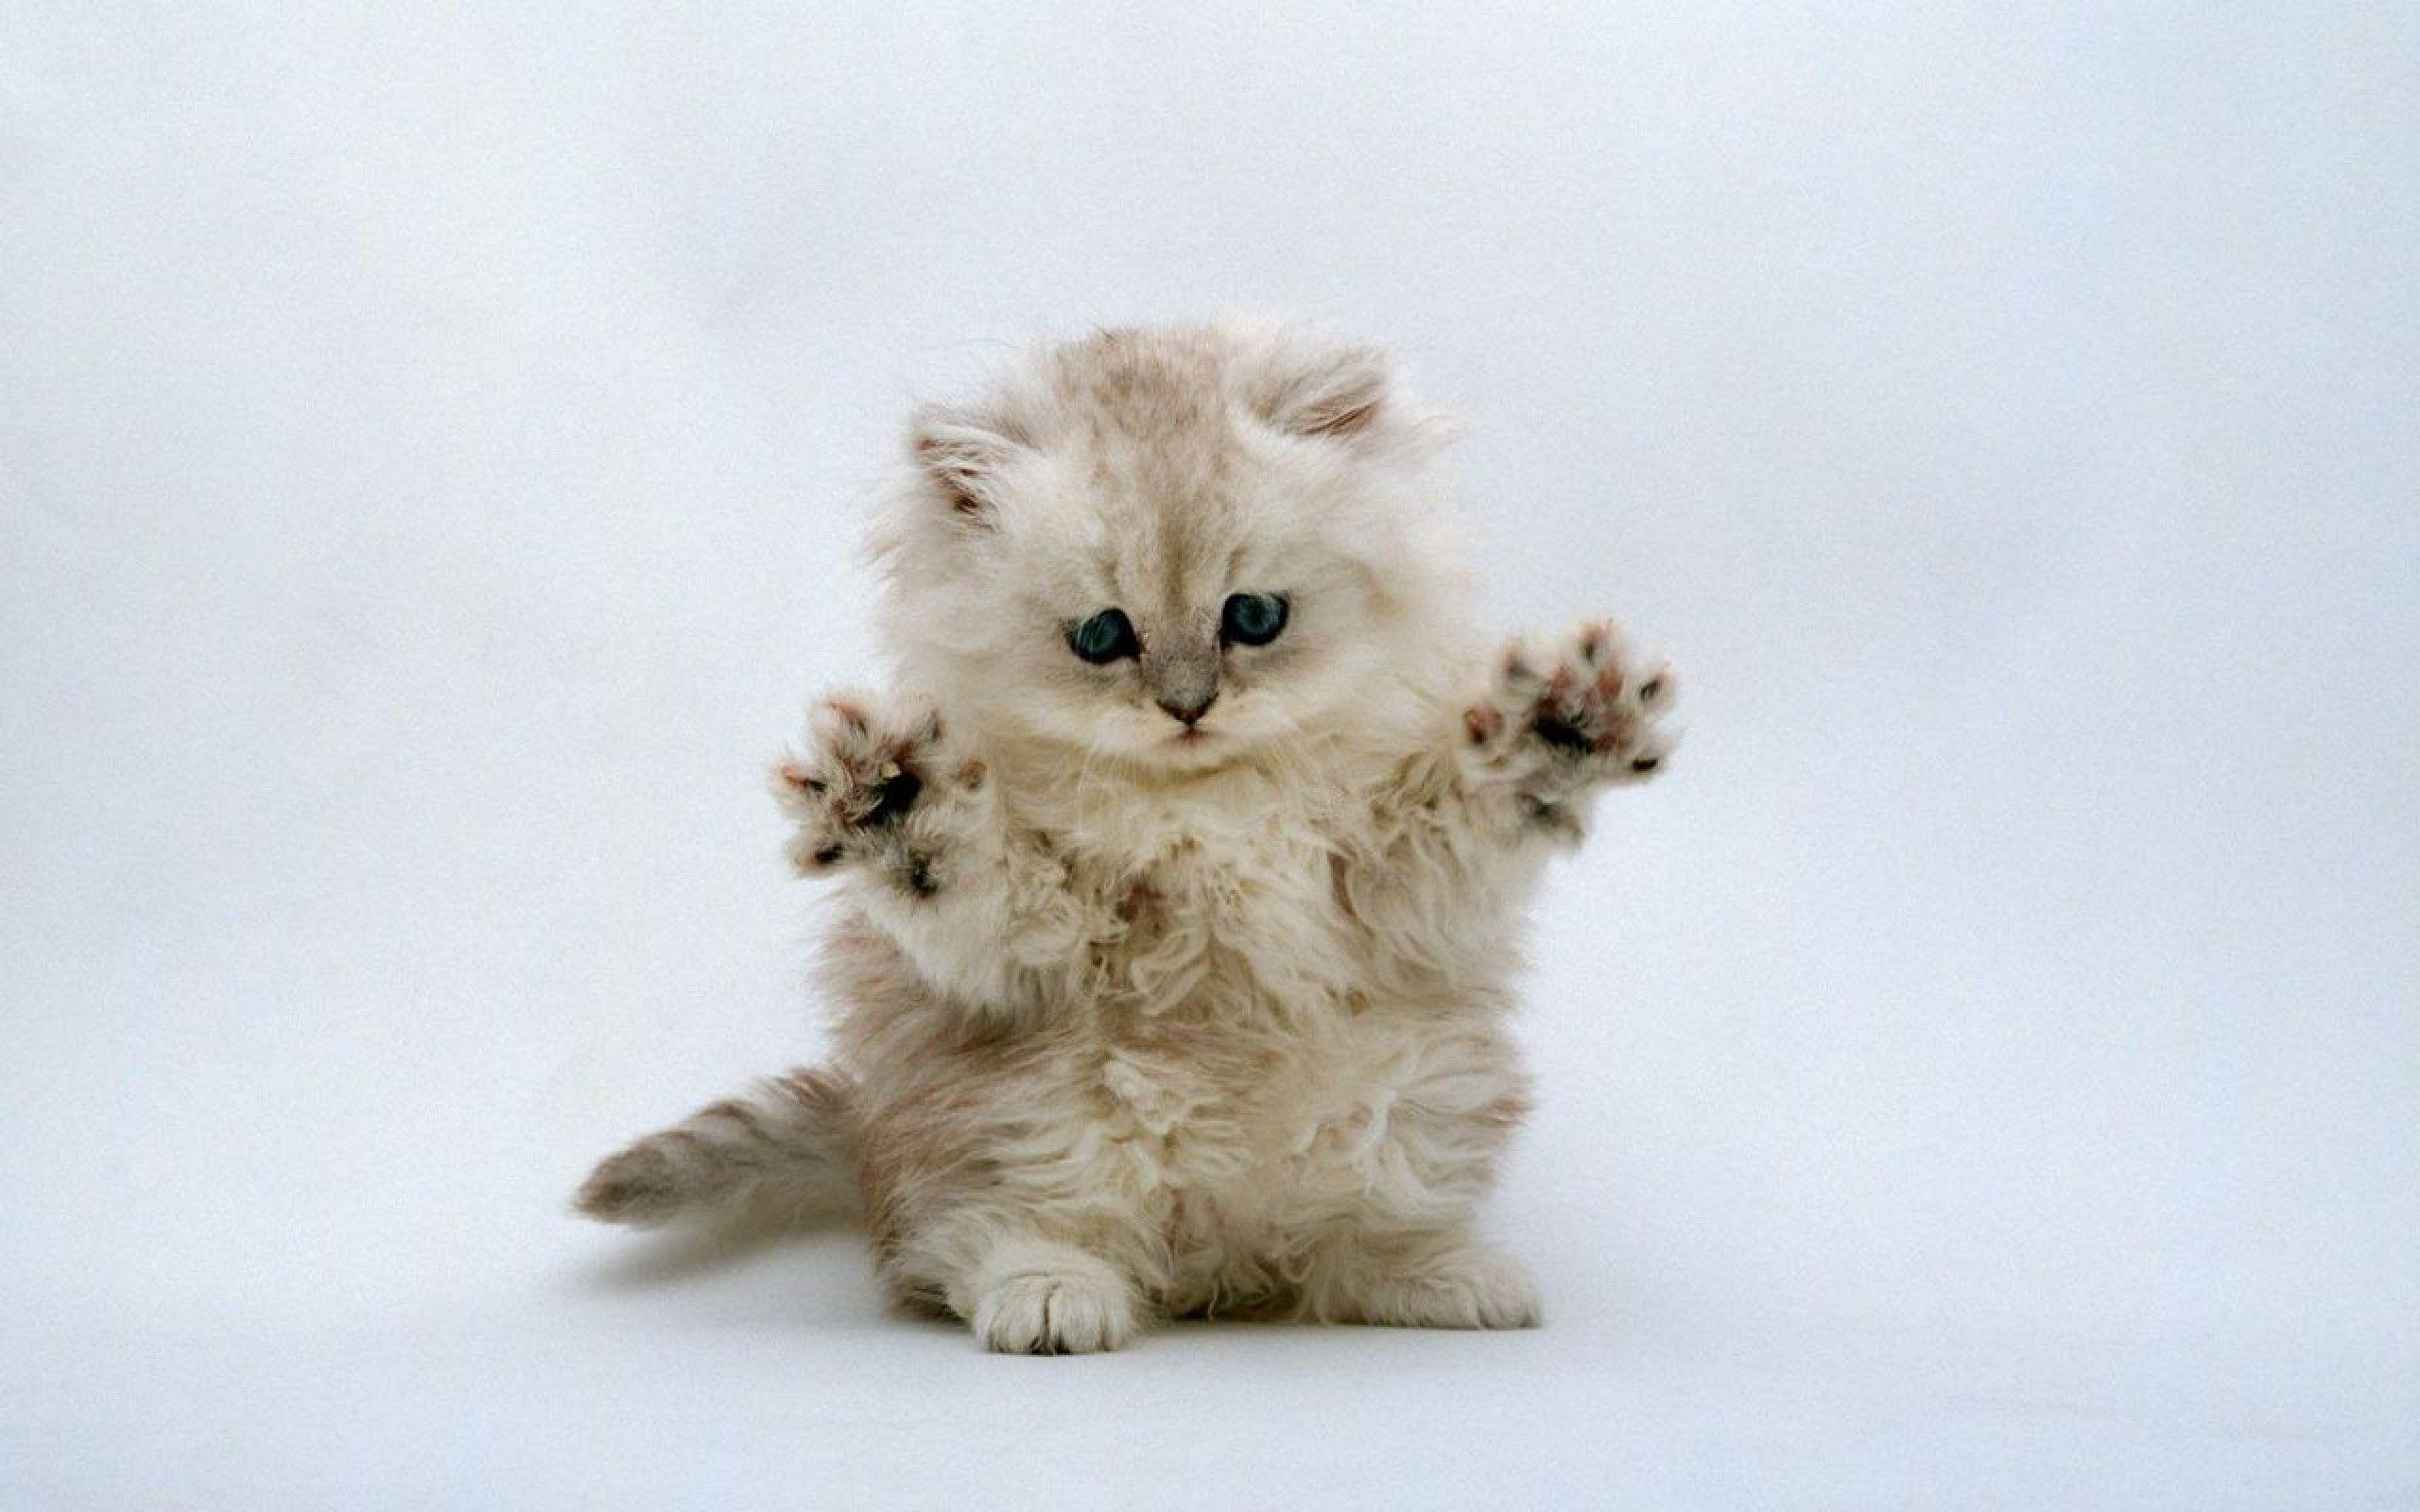 Cute Kitten Wallpapers HD Android Apps on Google Play